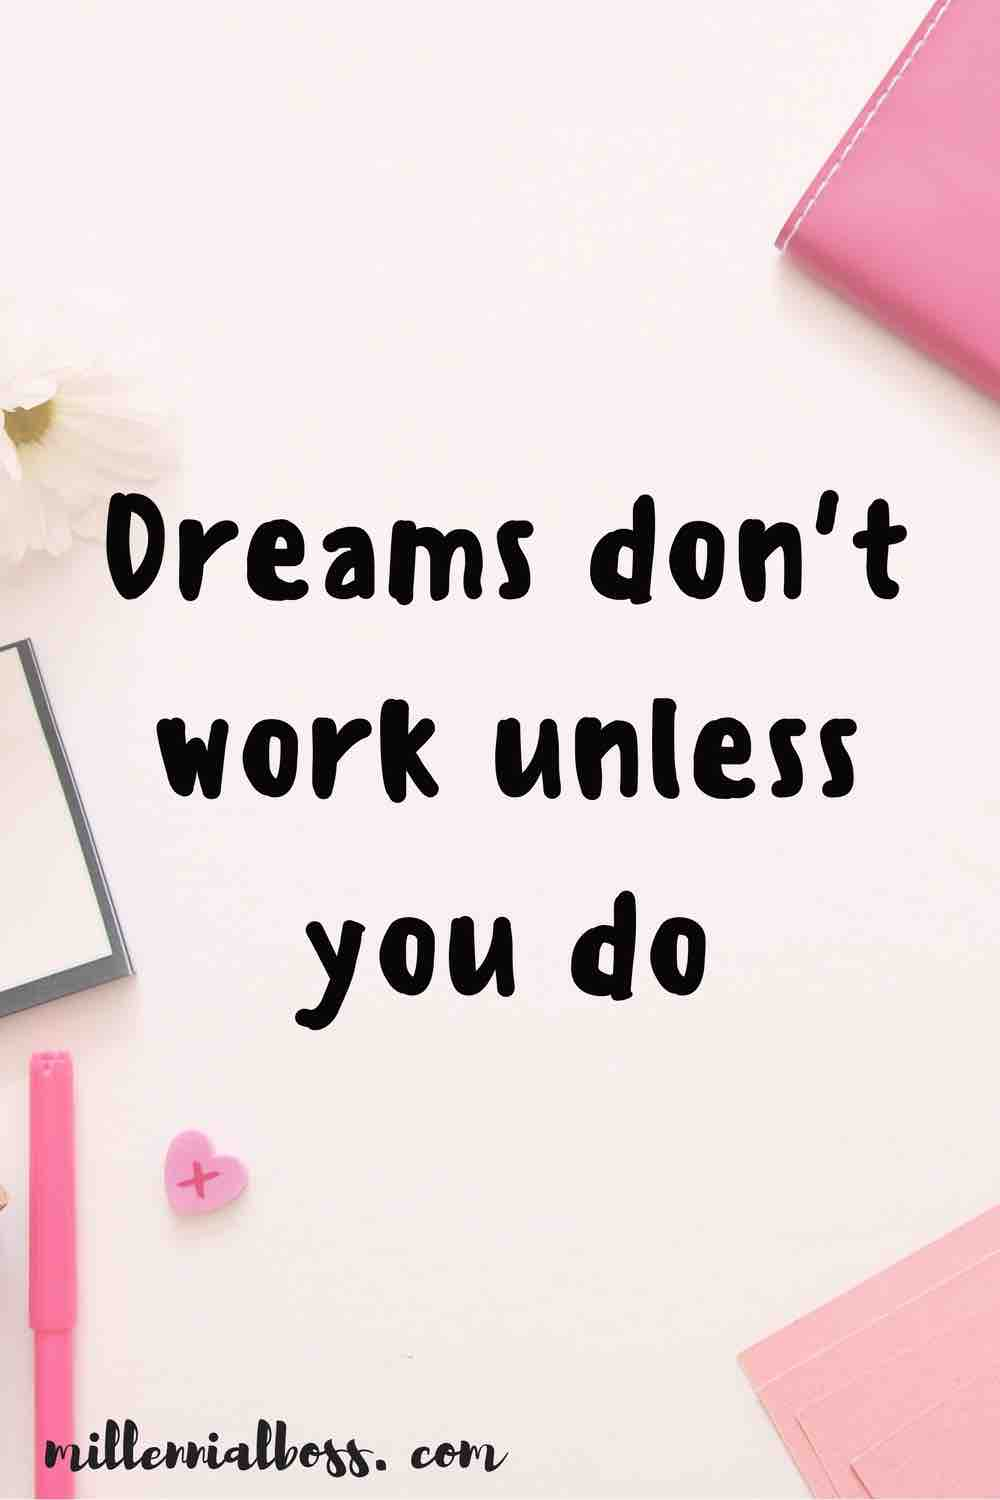 I'm always dreaming and now I need to start doing!! Who is dreaming with me?!